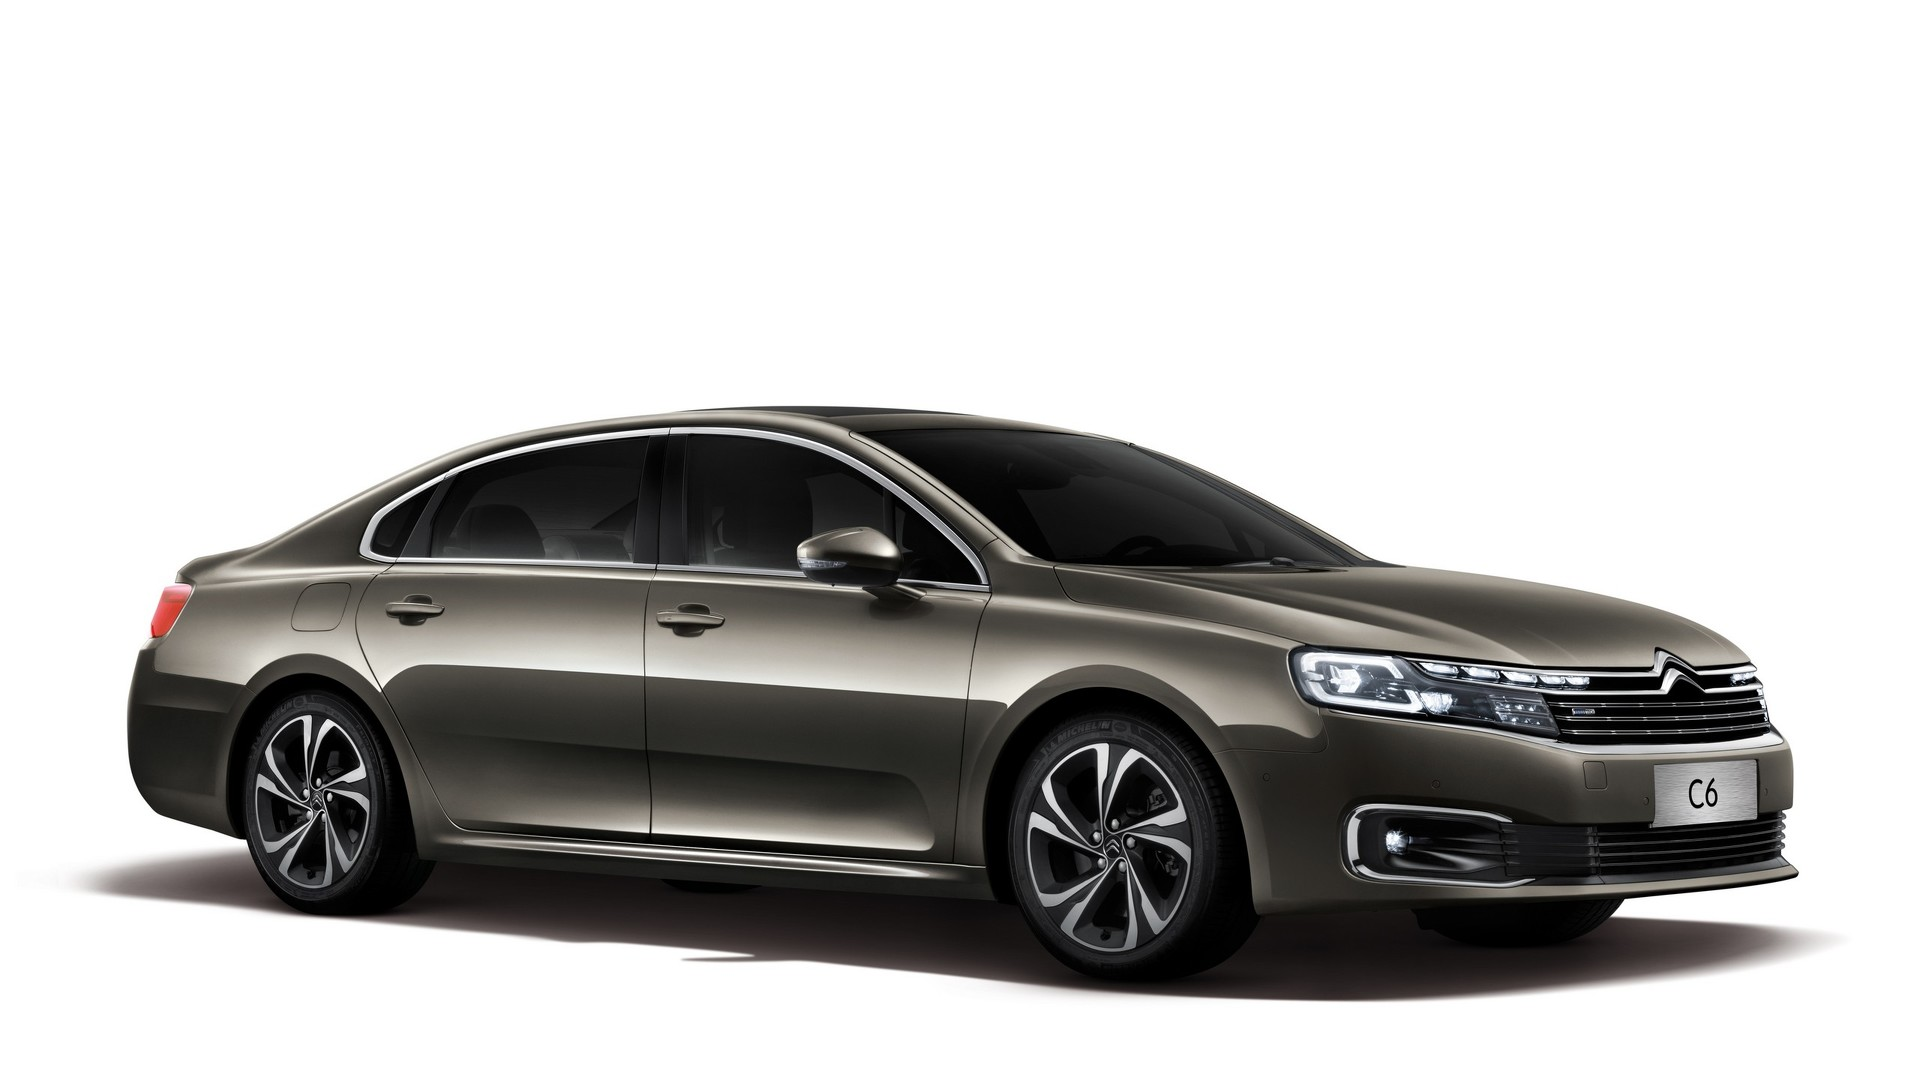 citroen c6 back from the dead for china. Black Bedroom Furniture Sets. Home Design Ideas